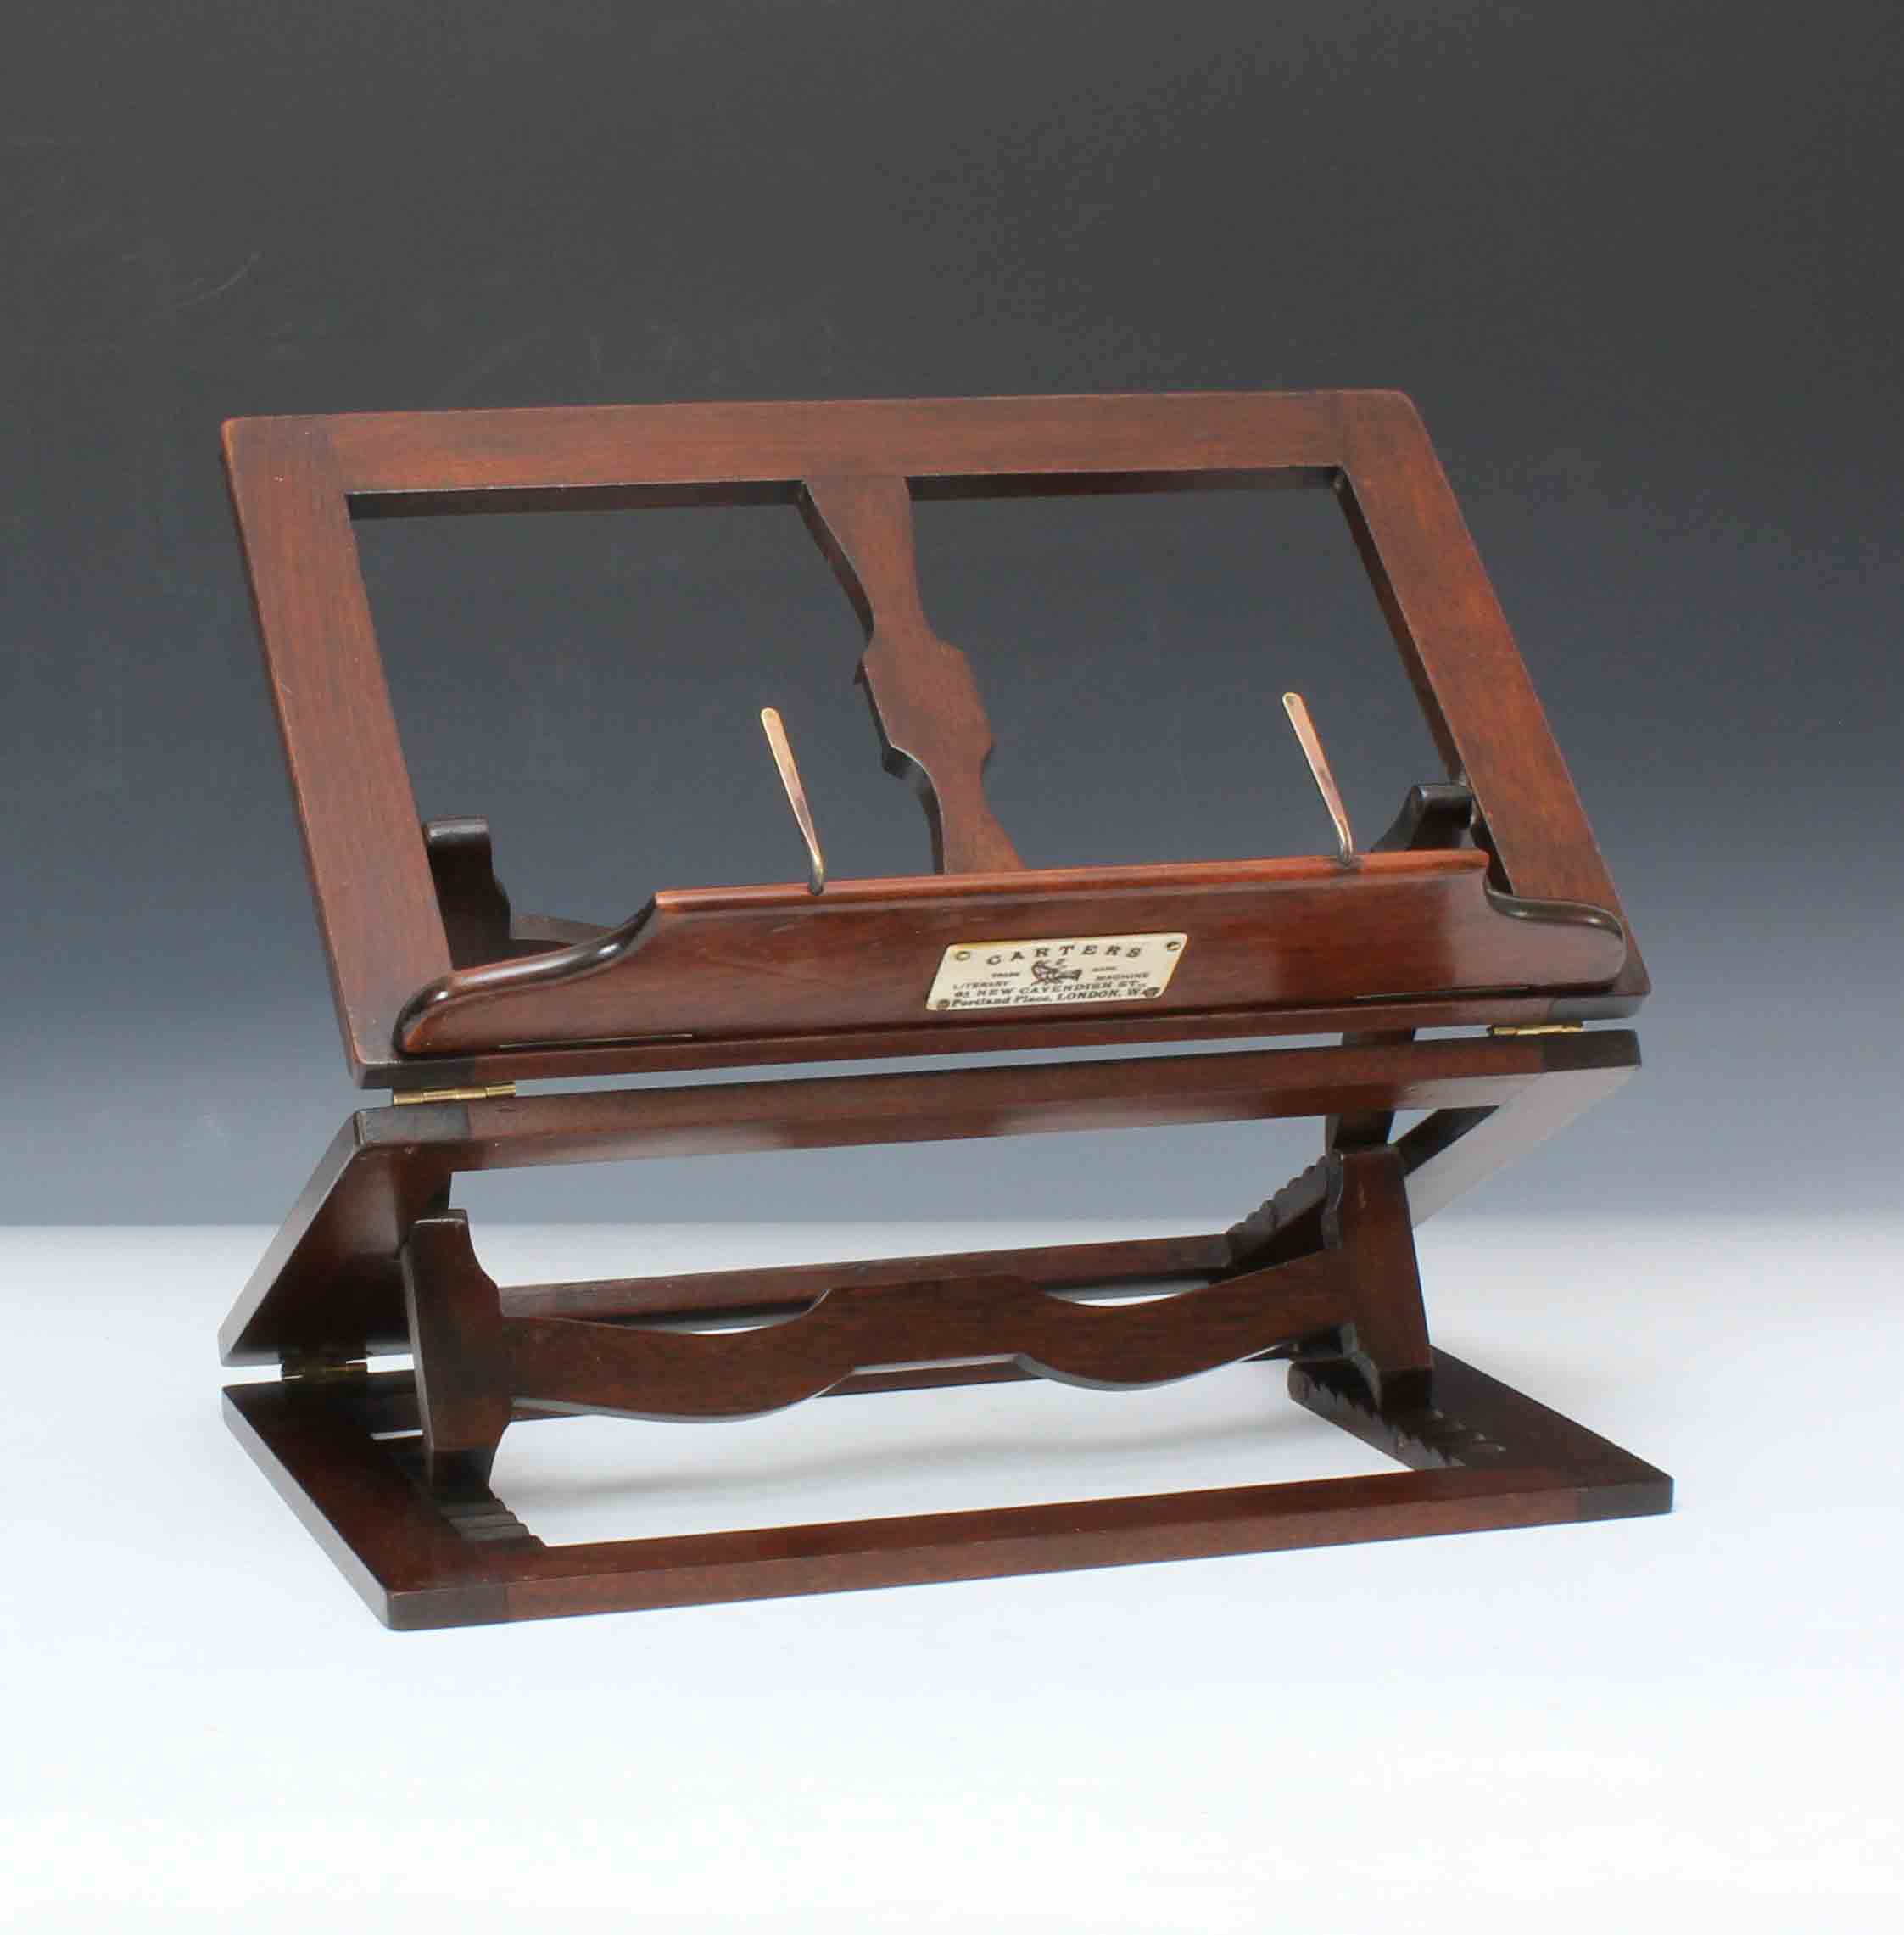 9285 early 20th century mahogany table top double jointed book